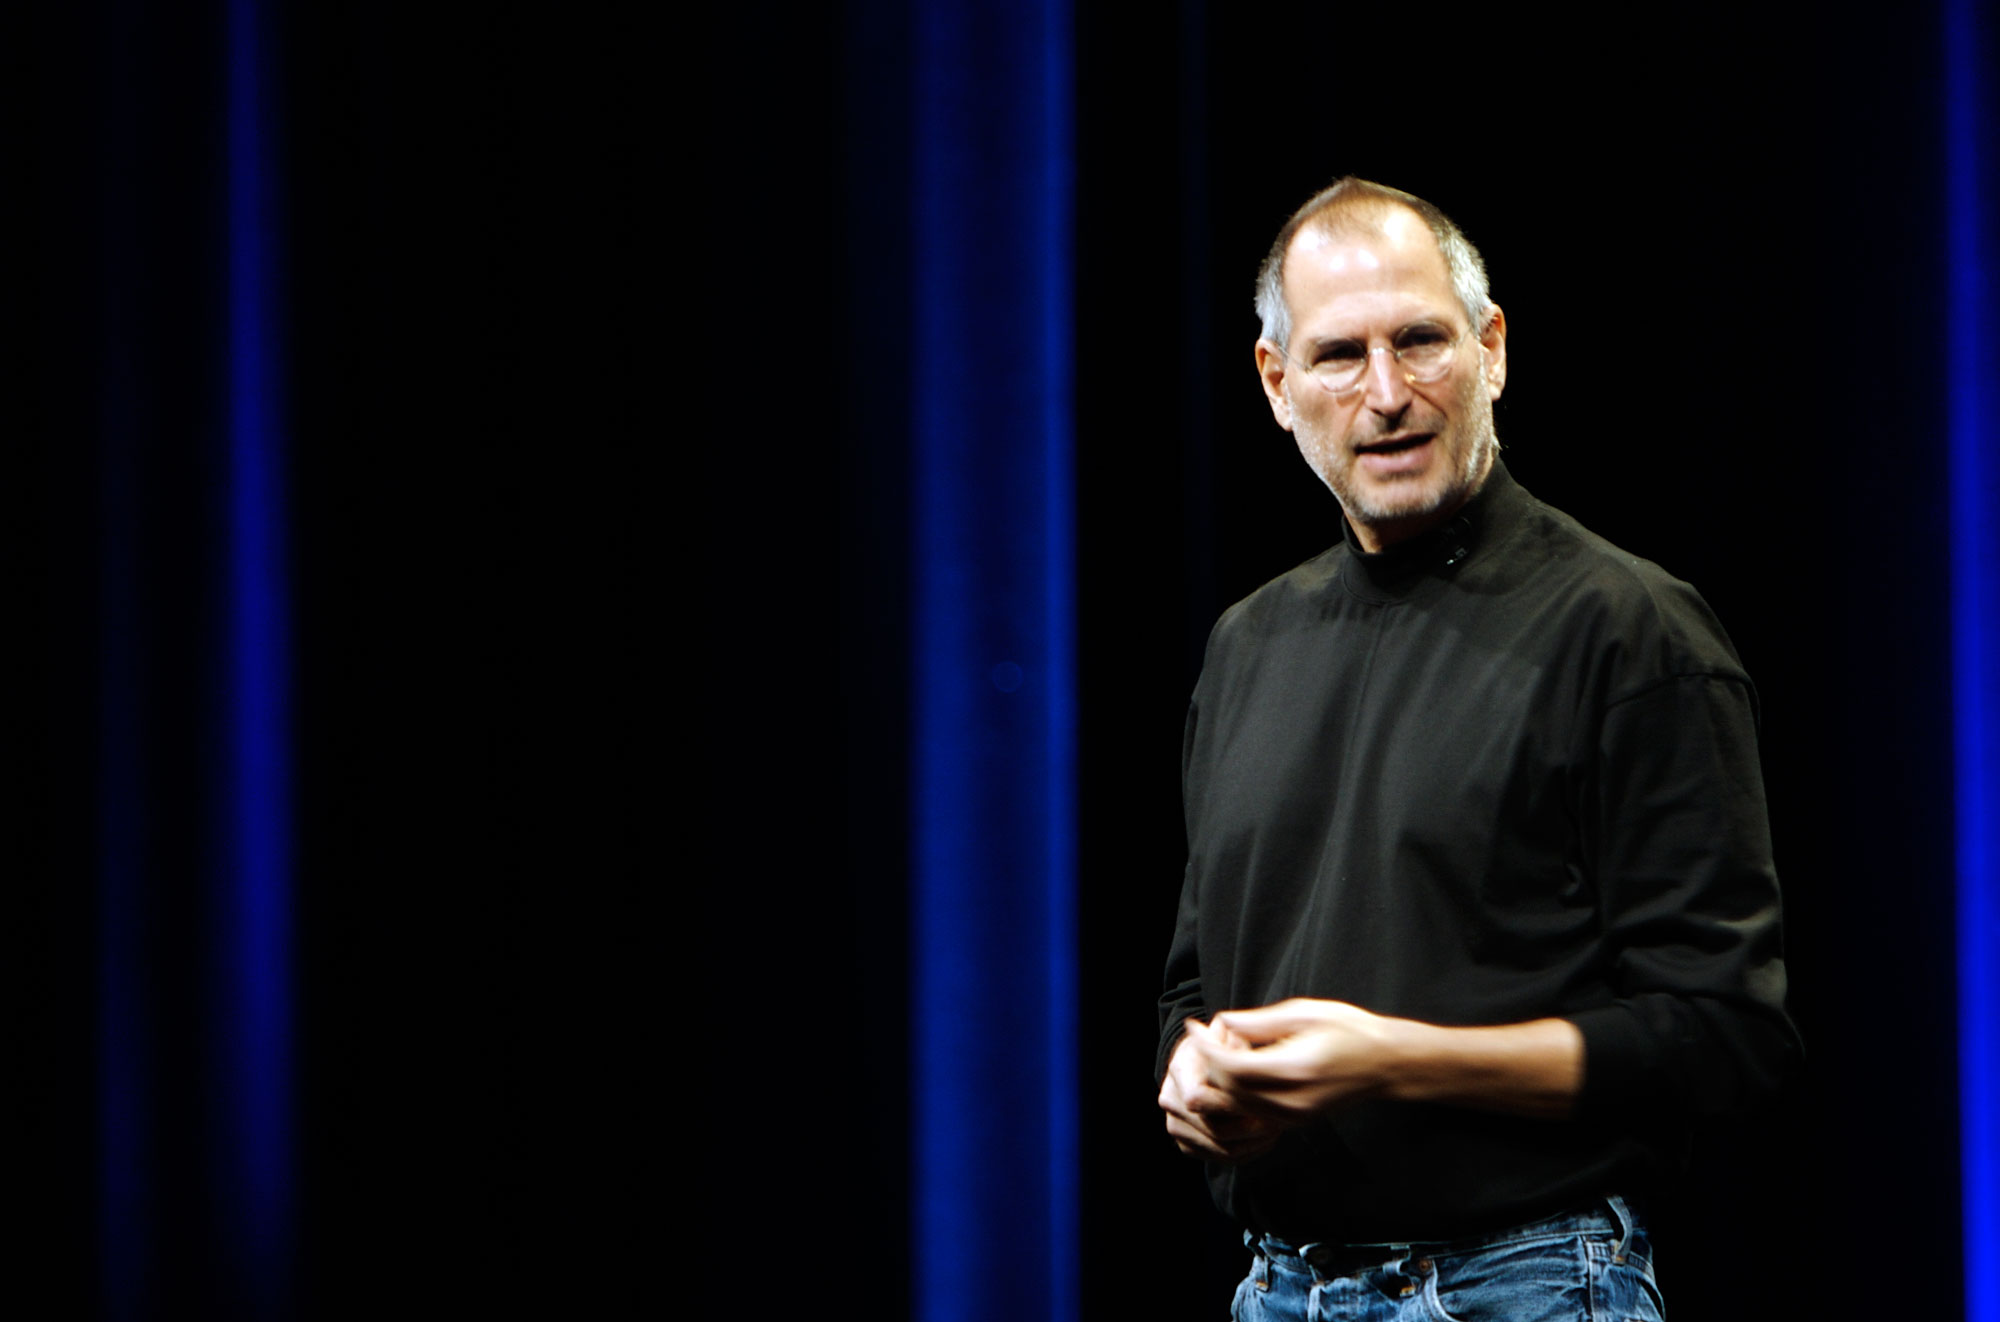 the admiration of steve jobs and importance of becoming better At his stanford university commencement speech, steve jobs, ceo and  is a  genuine respect and admiration for steve jobs, a man whose products i've never   what's really hard is understanding yourself and becoming a better person   i think more than planning and issues, the most important thing is to work out.